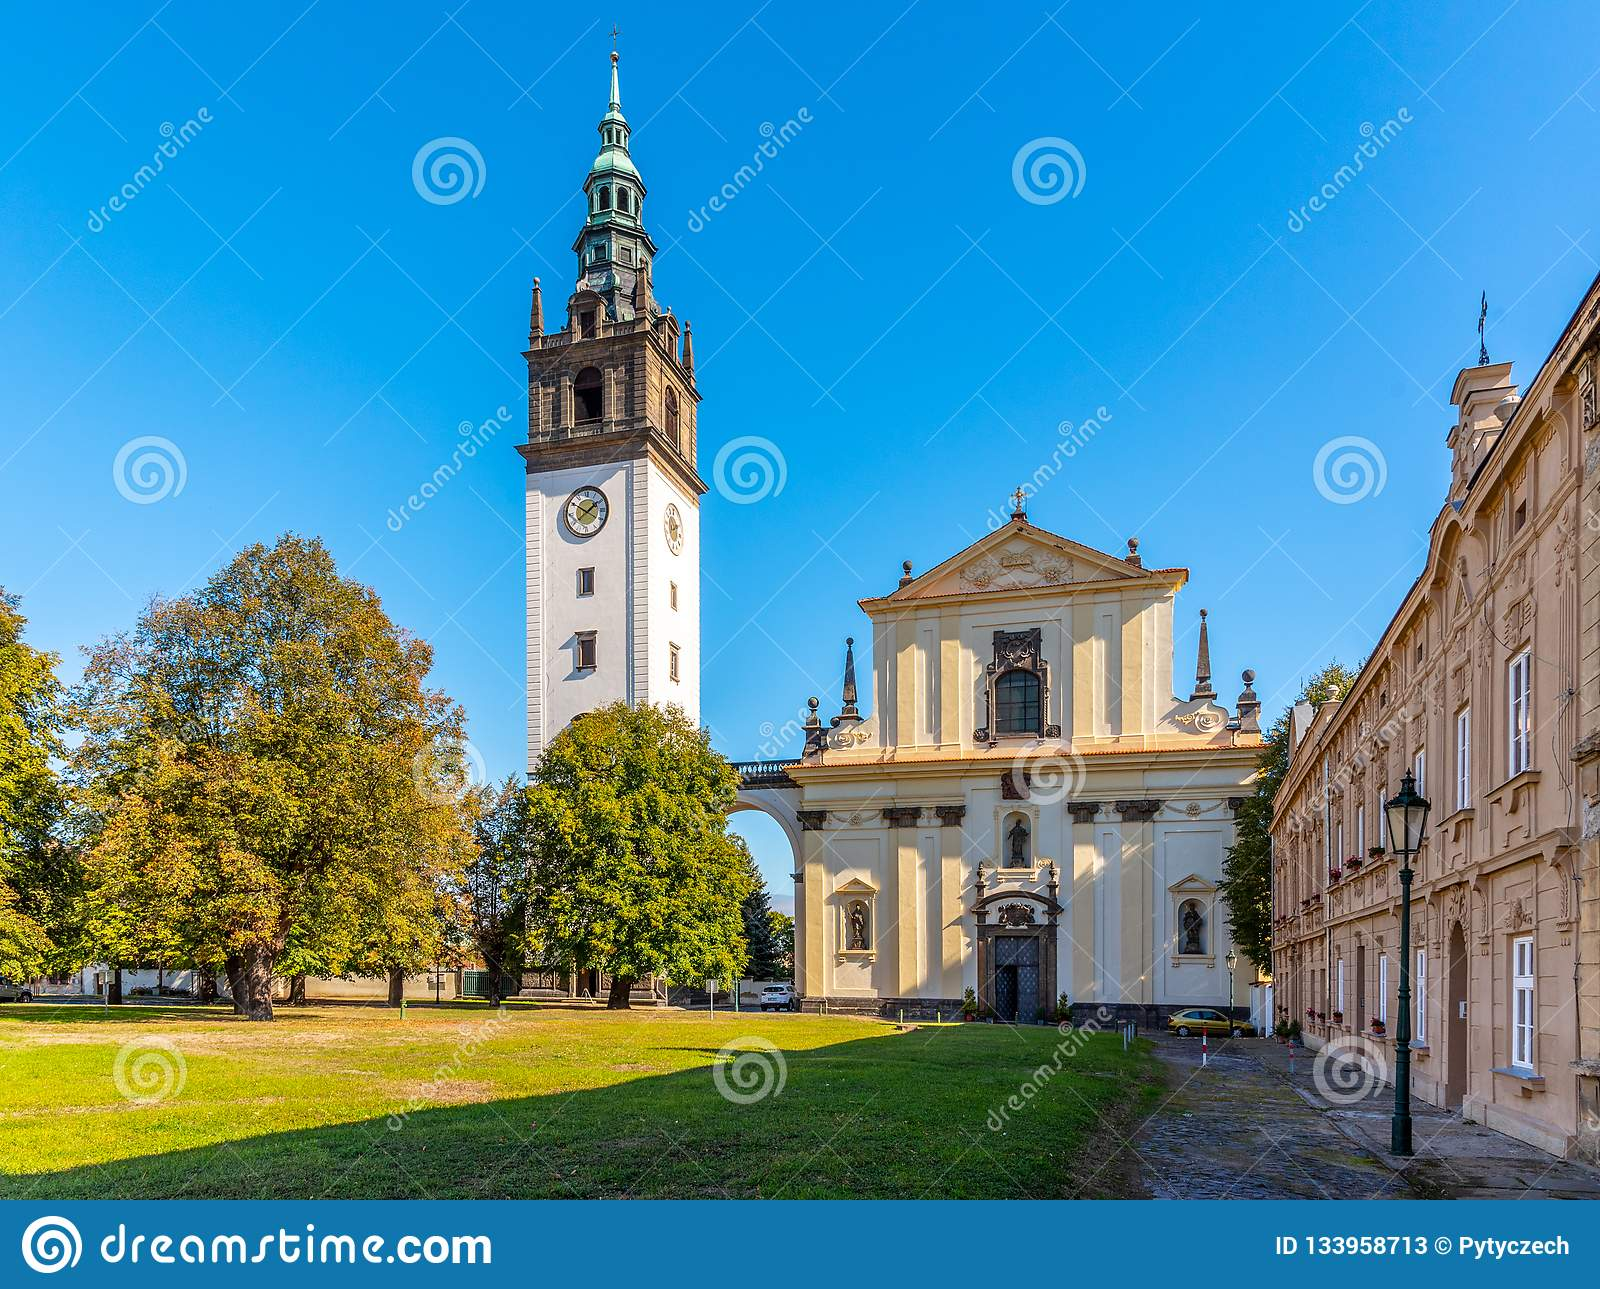 Baroque St. Stephen`s Cathedral with bell tower at the Cathedral Square in Litomerice, Czech Republic